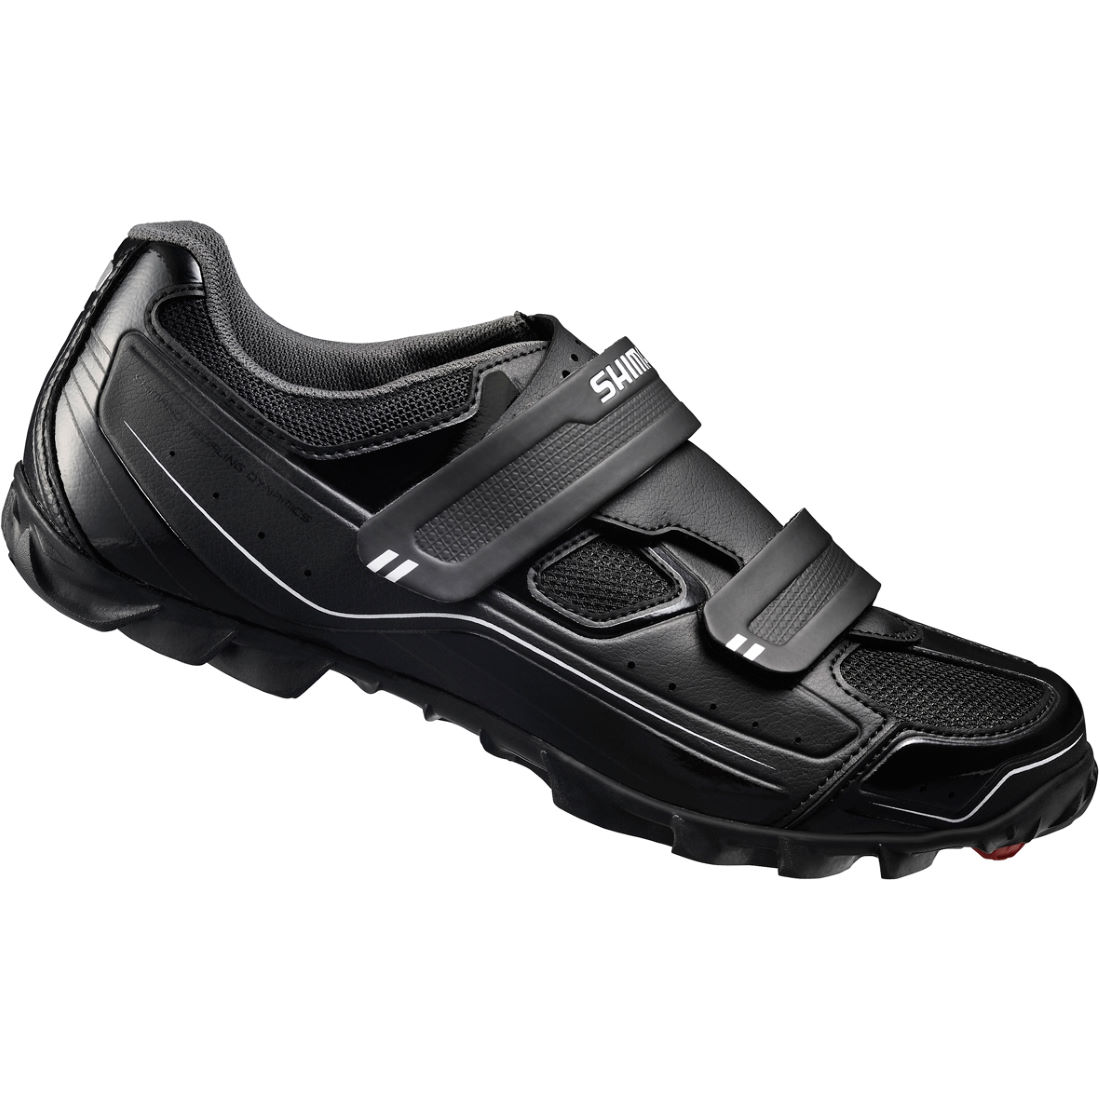 Superb range of Cycling Shoes at techhelpdesk.tk, the online cycle, run, swim & tri shop! FREE Tracked Shipping on orders over $50 and now Duty Free up to $